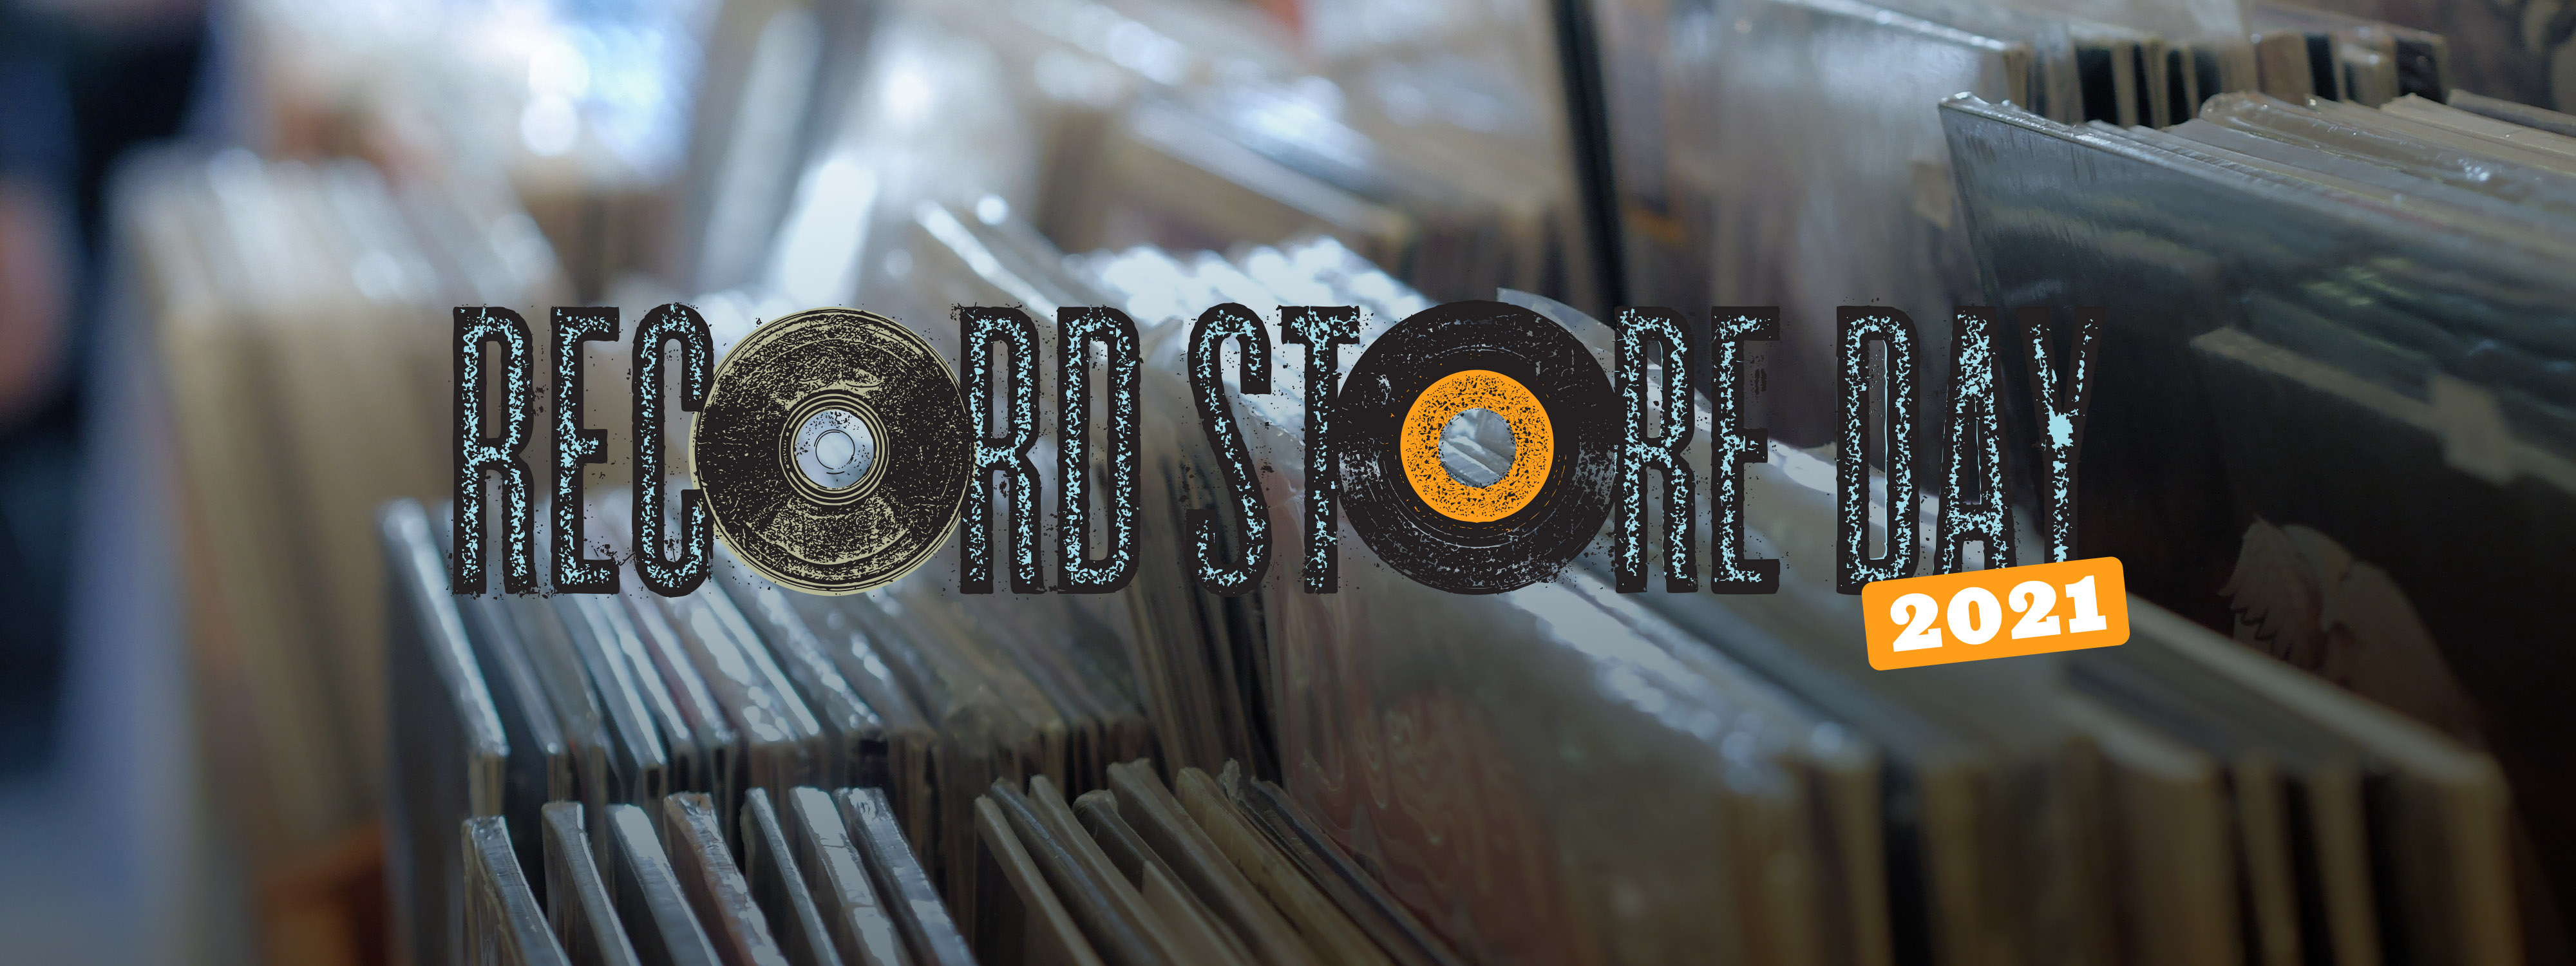 The Orchard's 2021 Record Store Day Shopping List